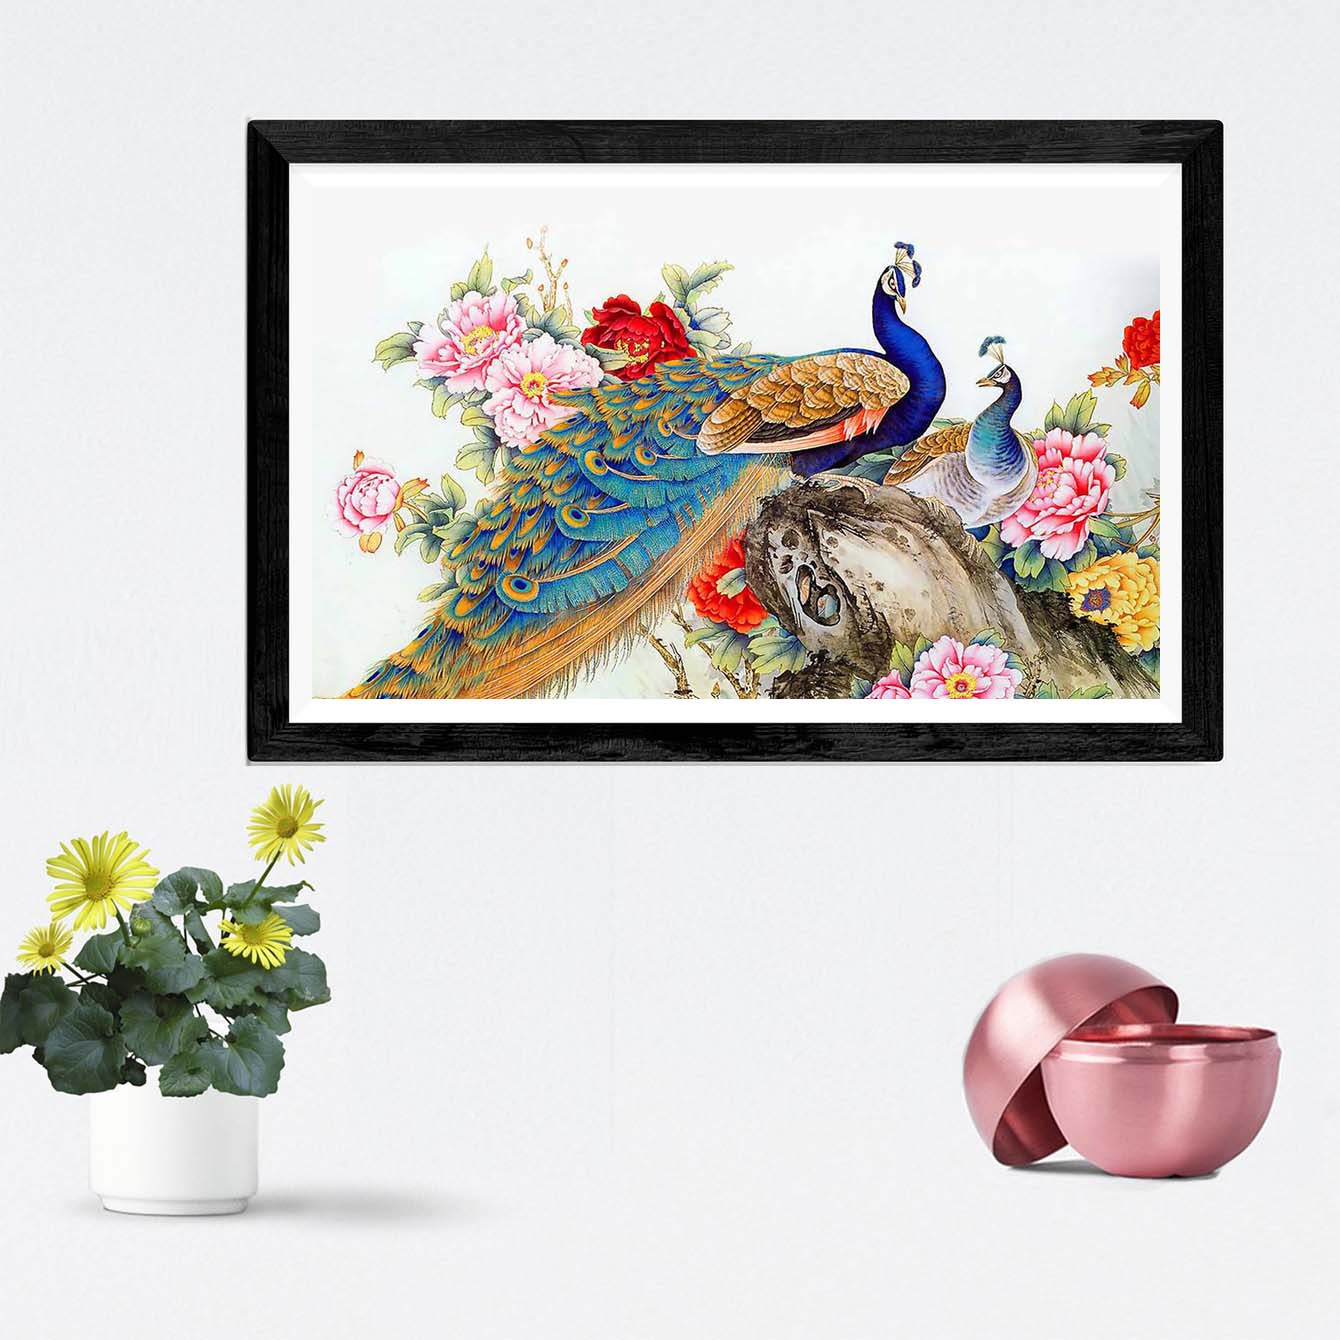 Colorful Peacock Framed Painting